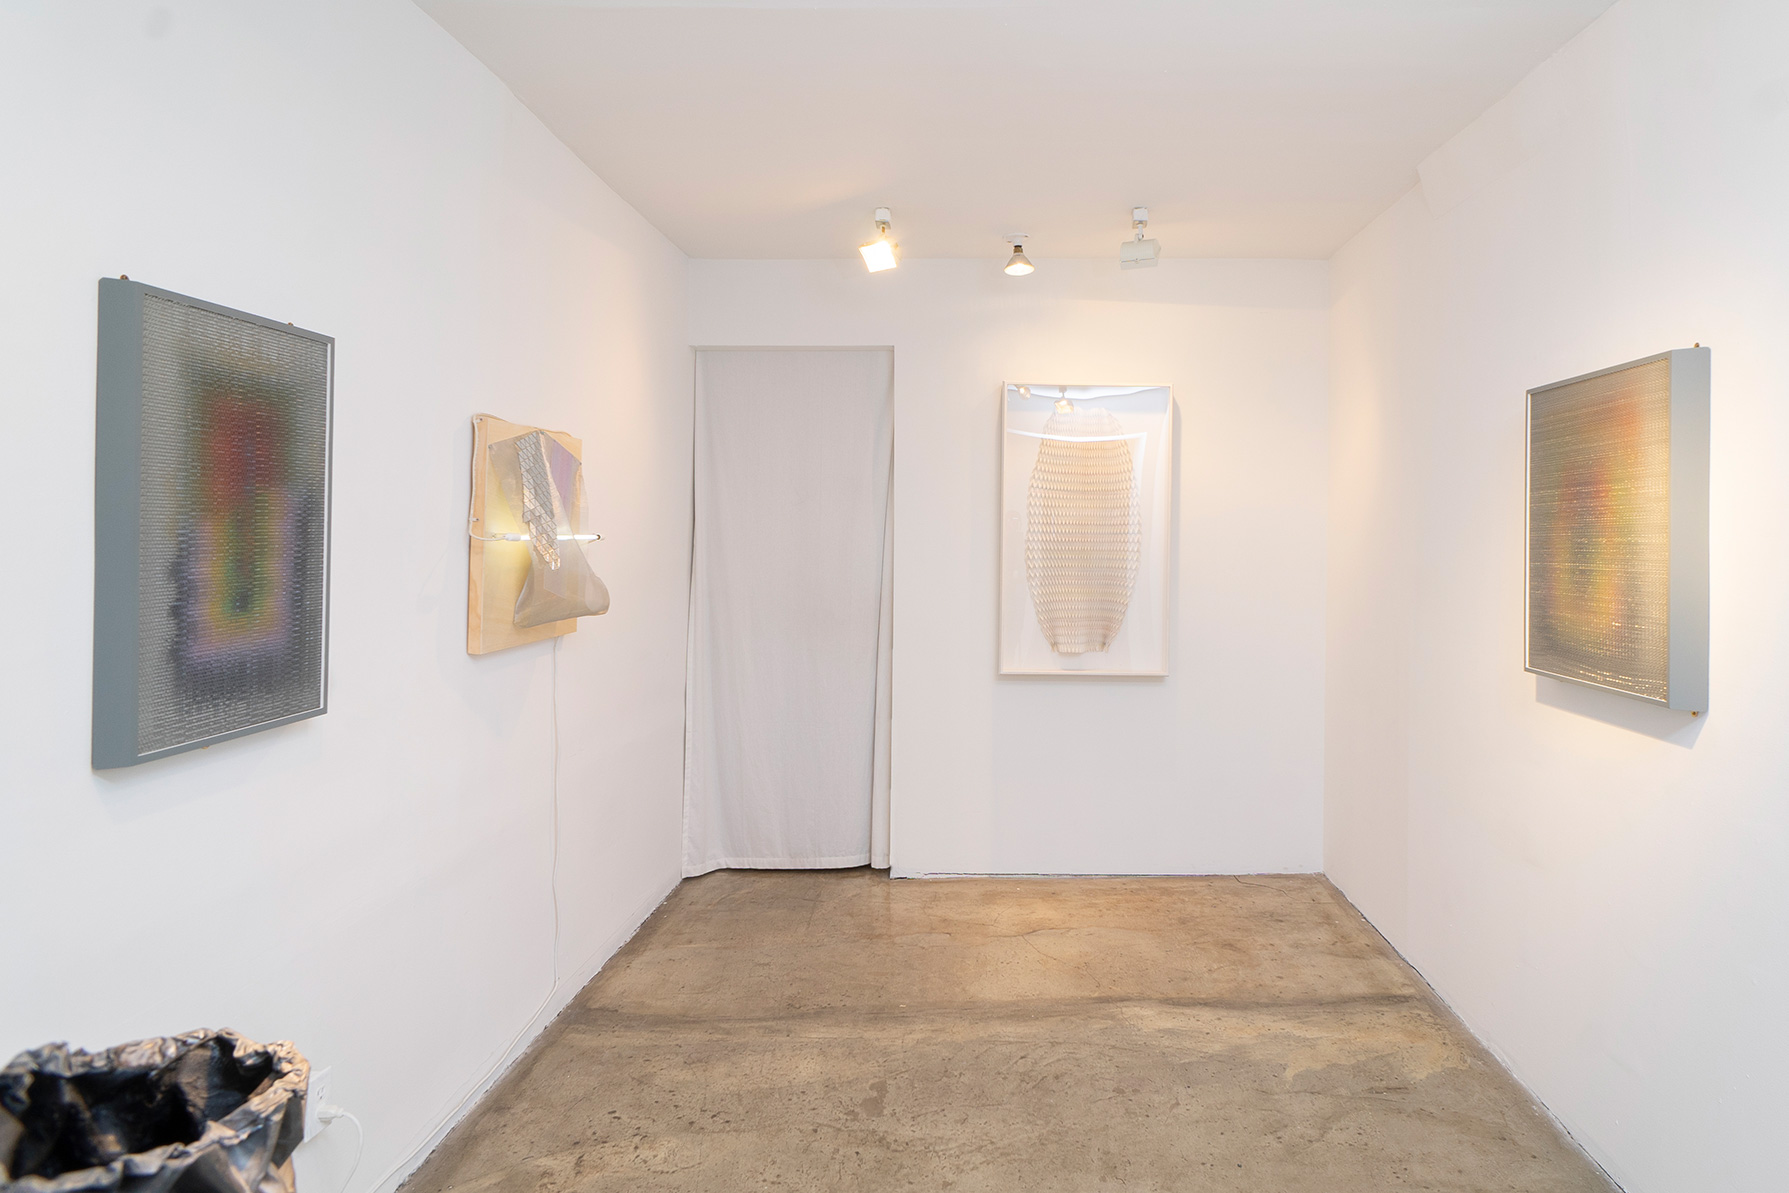 Installation view, Optic Wave: MaDora Frey + Caleb Nussear